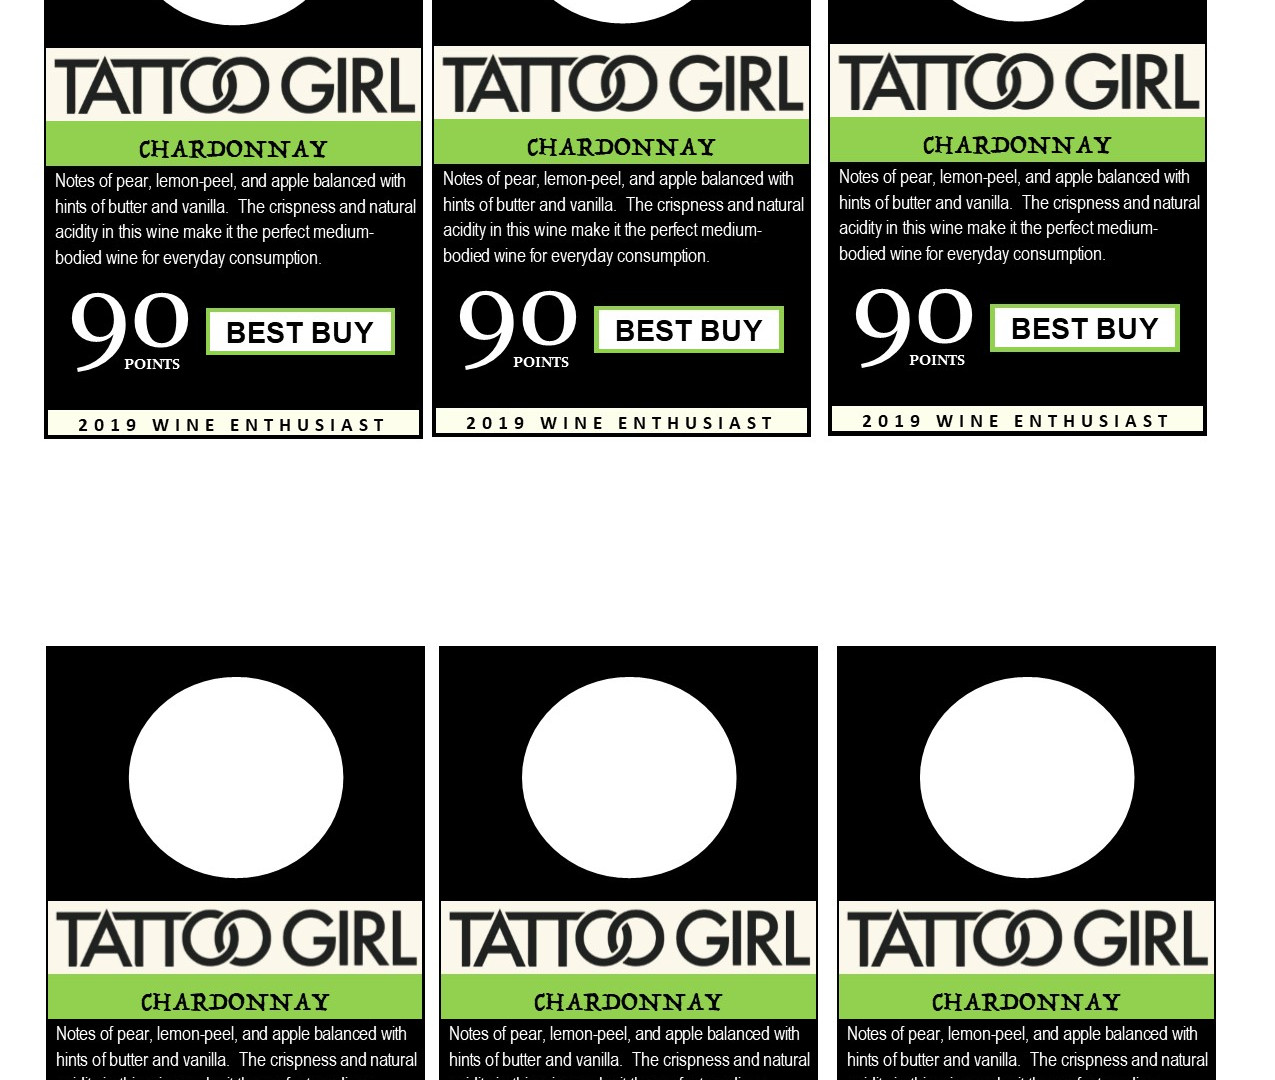 TATTOO GIRL 2020 Chardonnay Btl.jpg